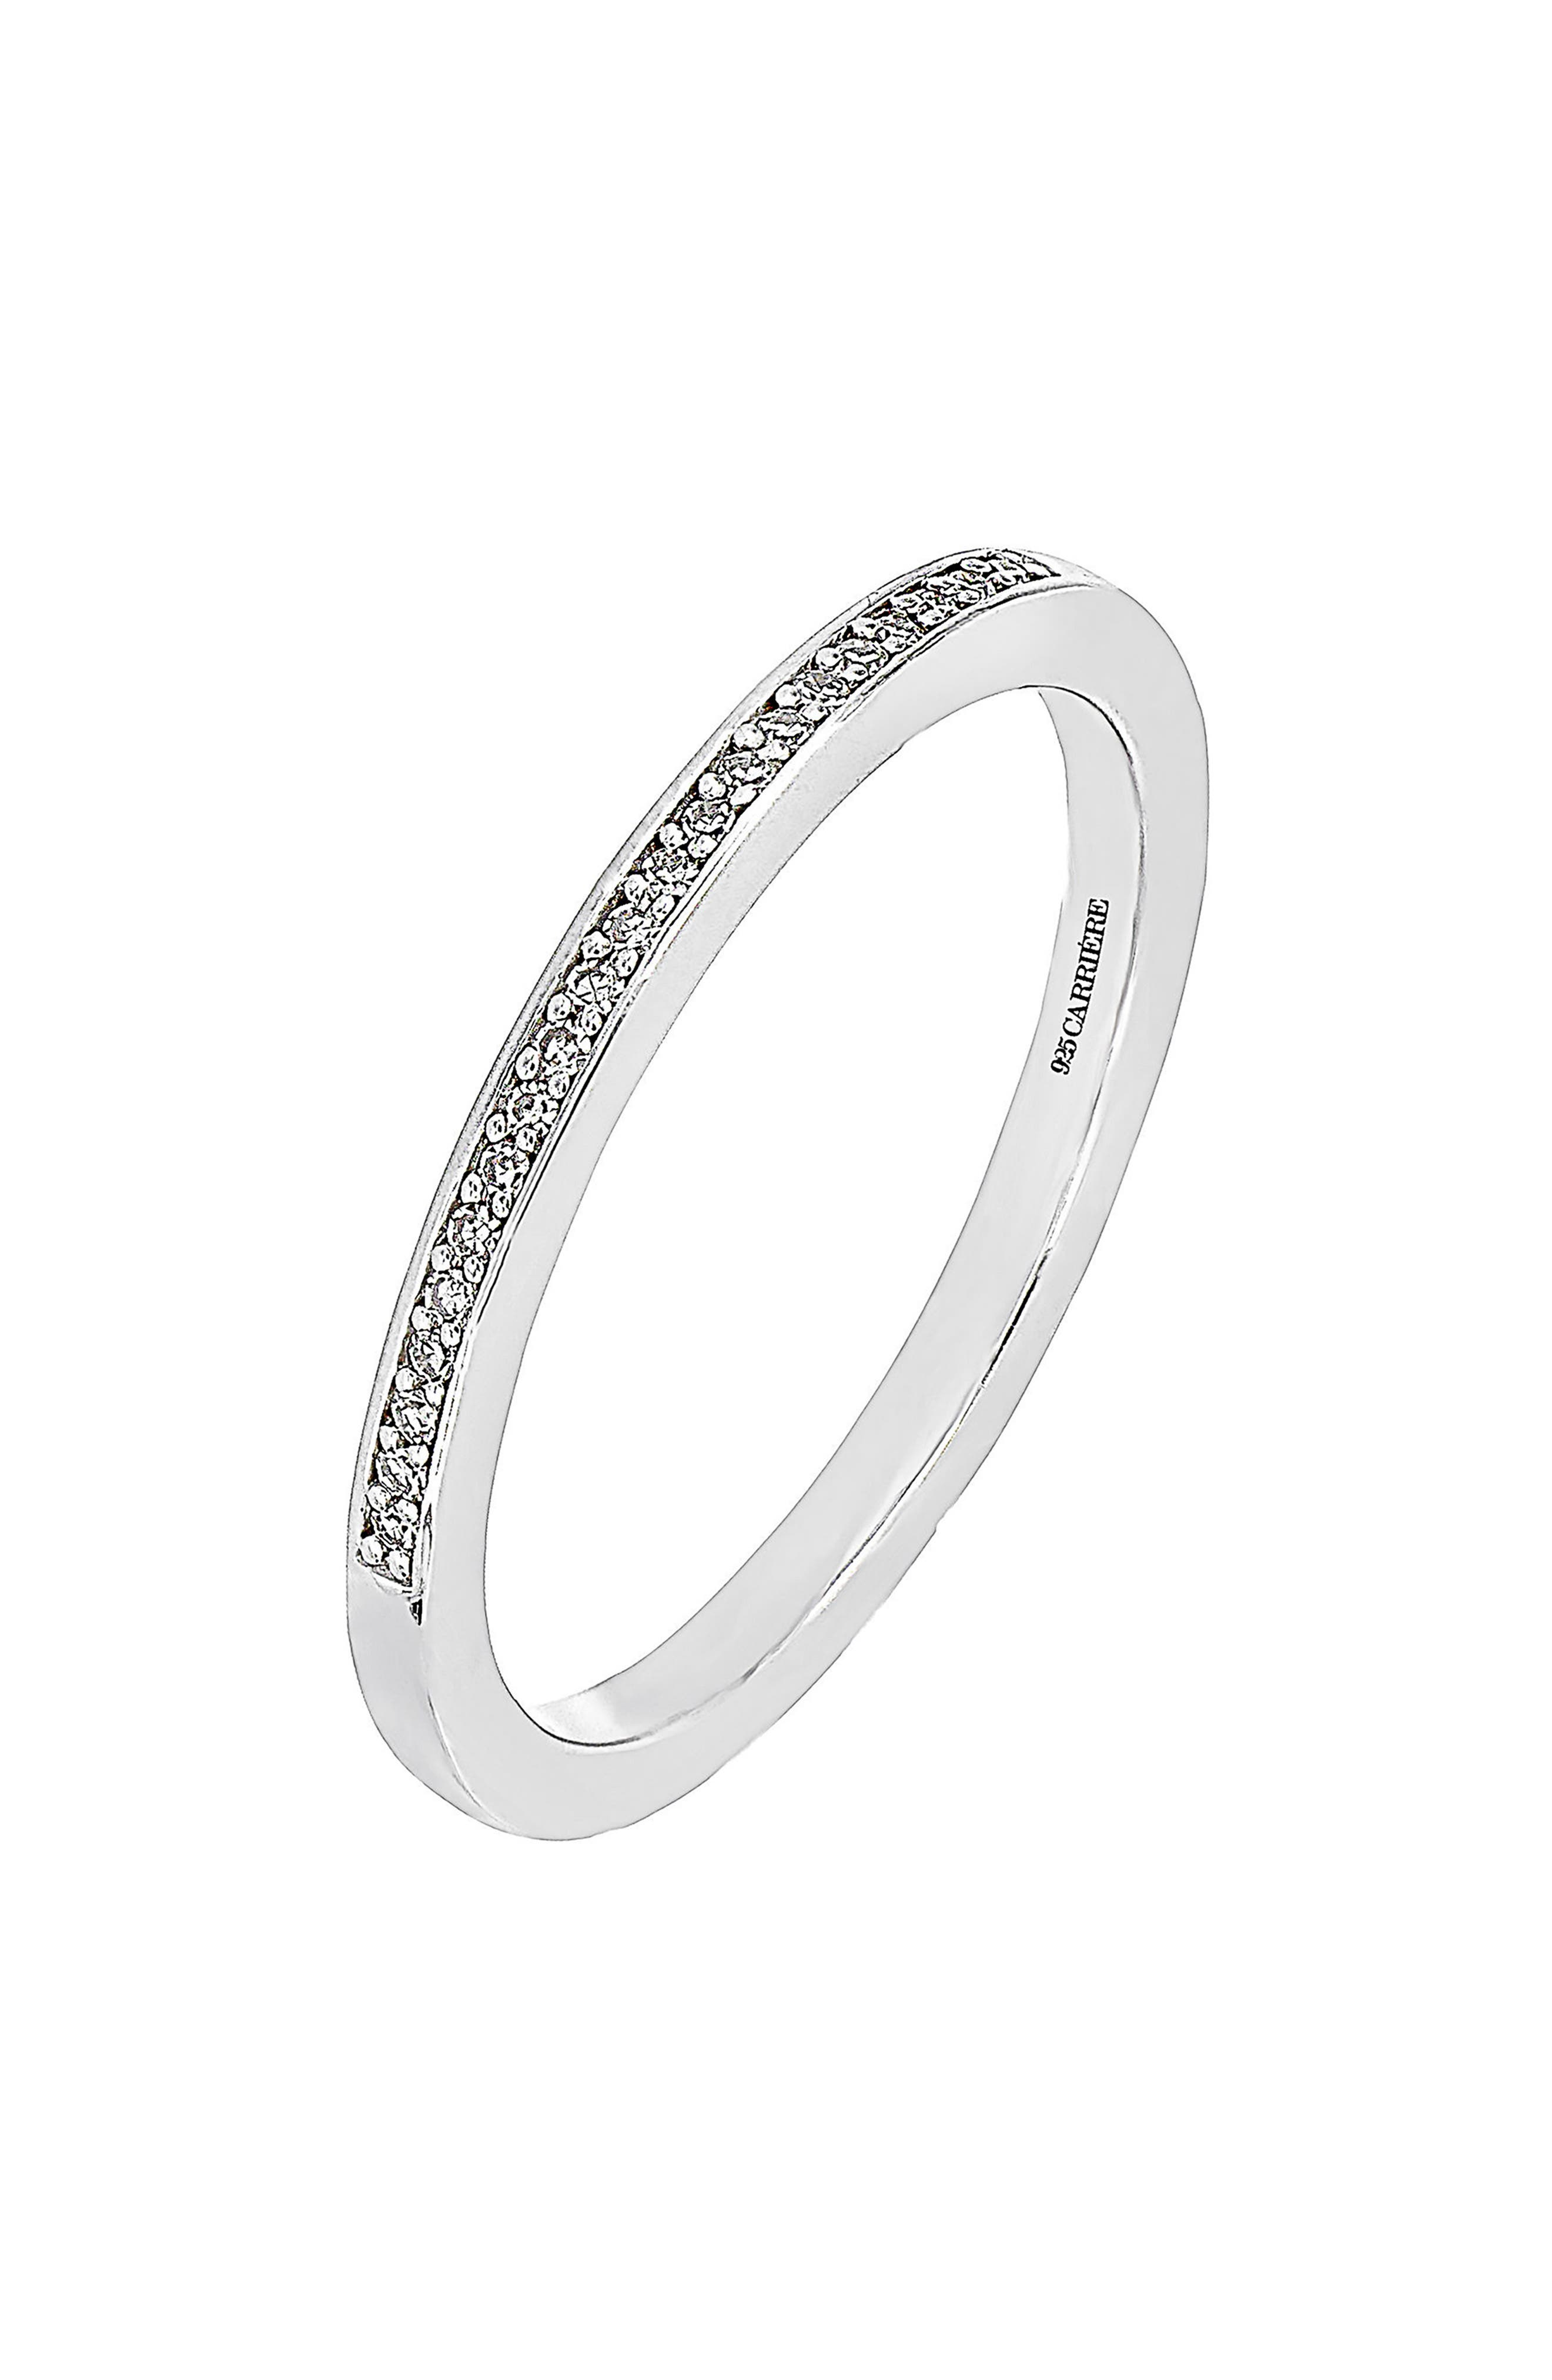 Main Image - Carrière Diamond Stacking Ring (Nordstrom Exclusive)